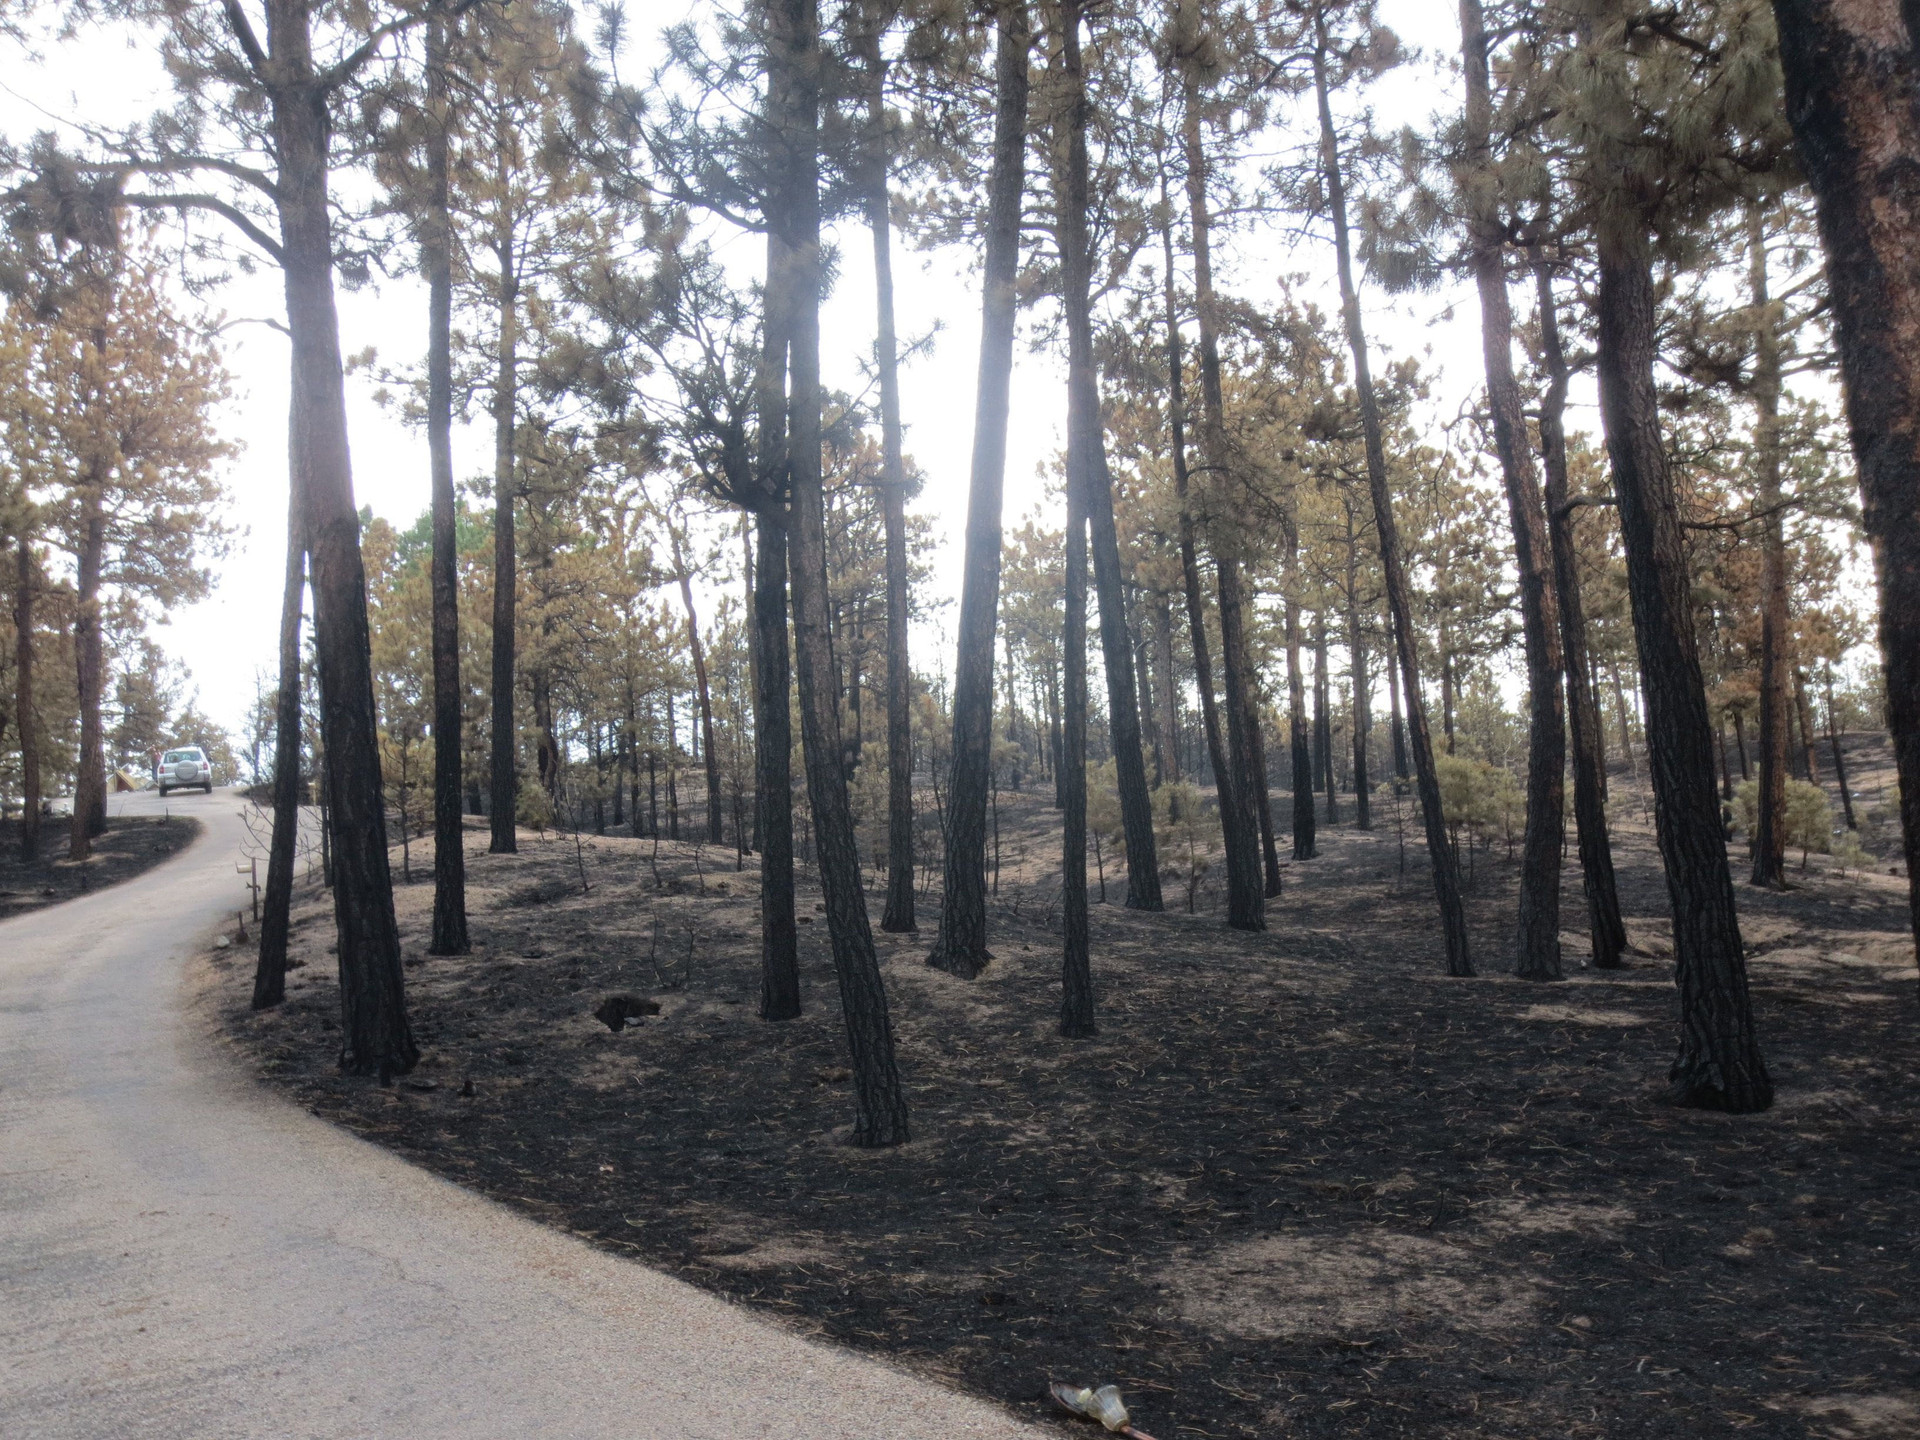 The front yard. This shows the extent of the fire damage.